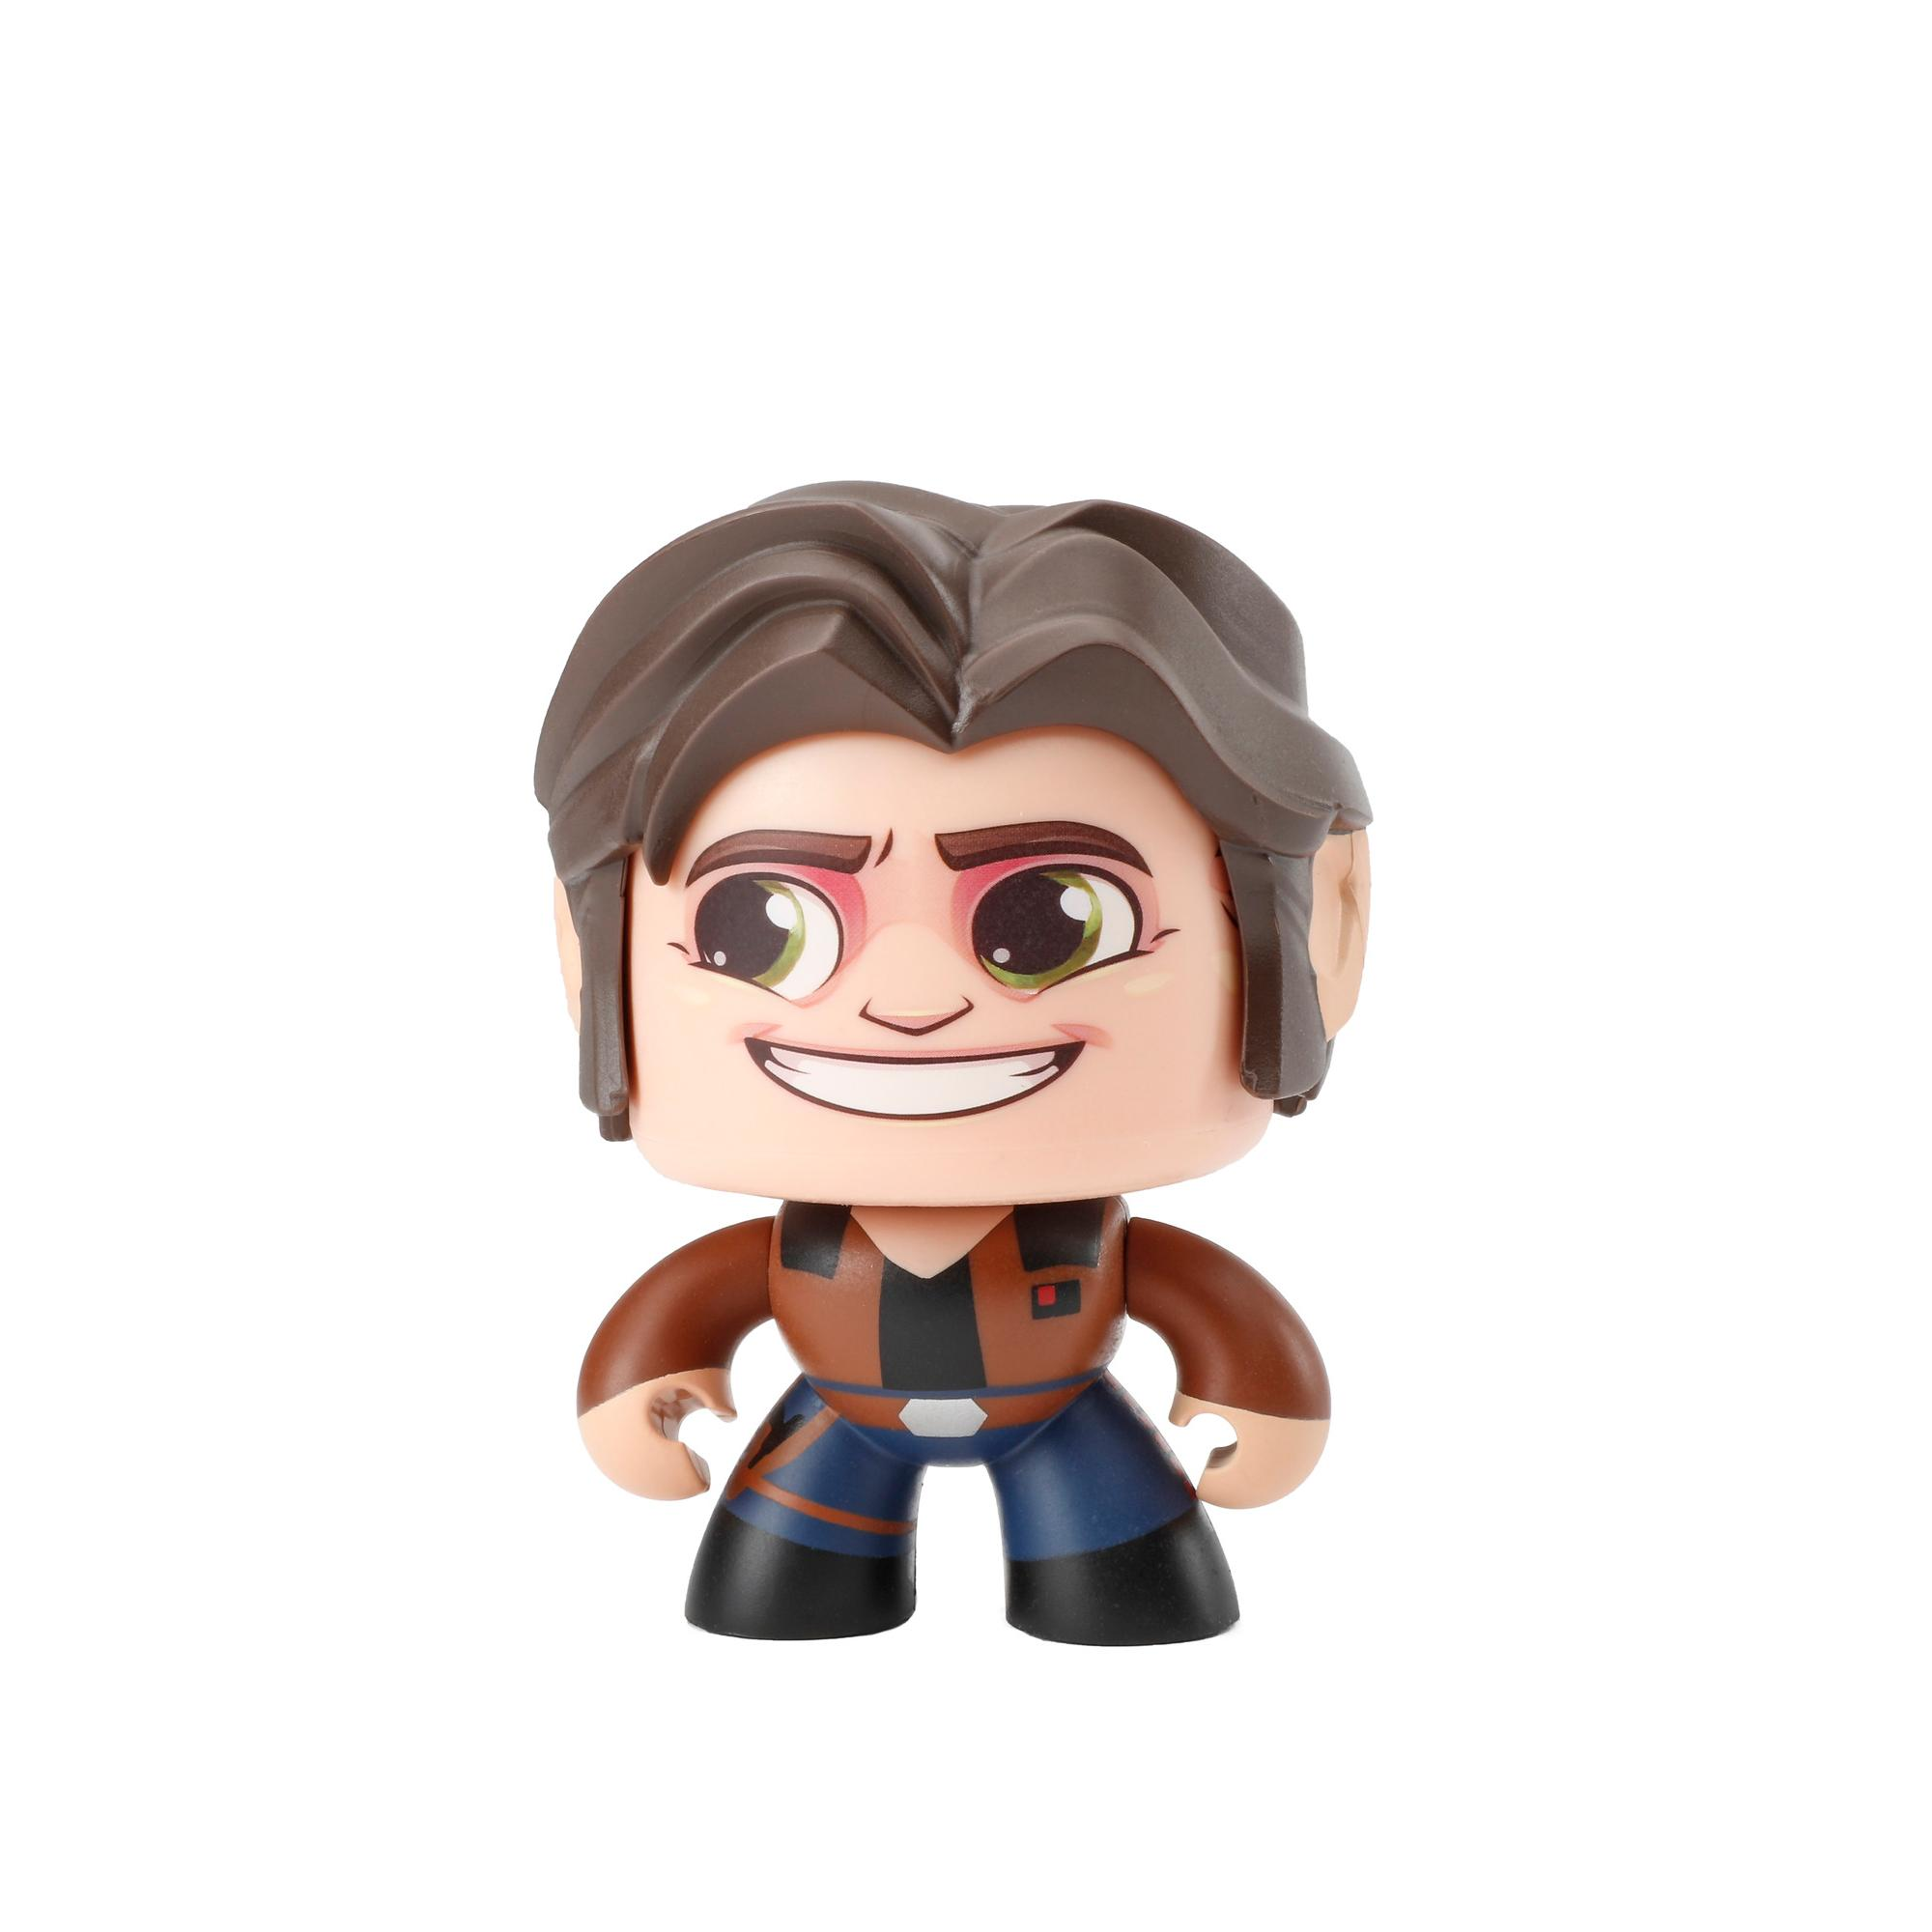 Mighty Muggs Star Wars - Han Solo